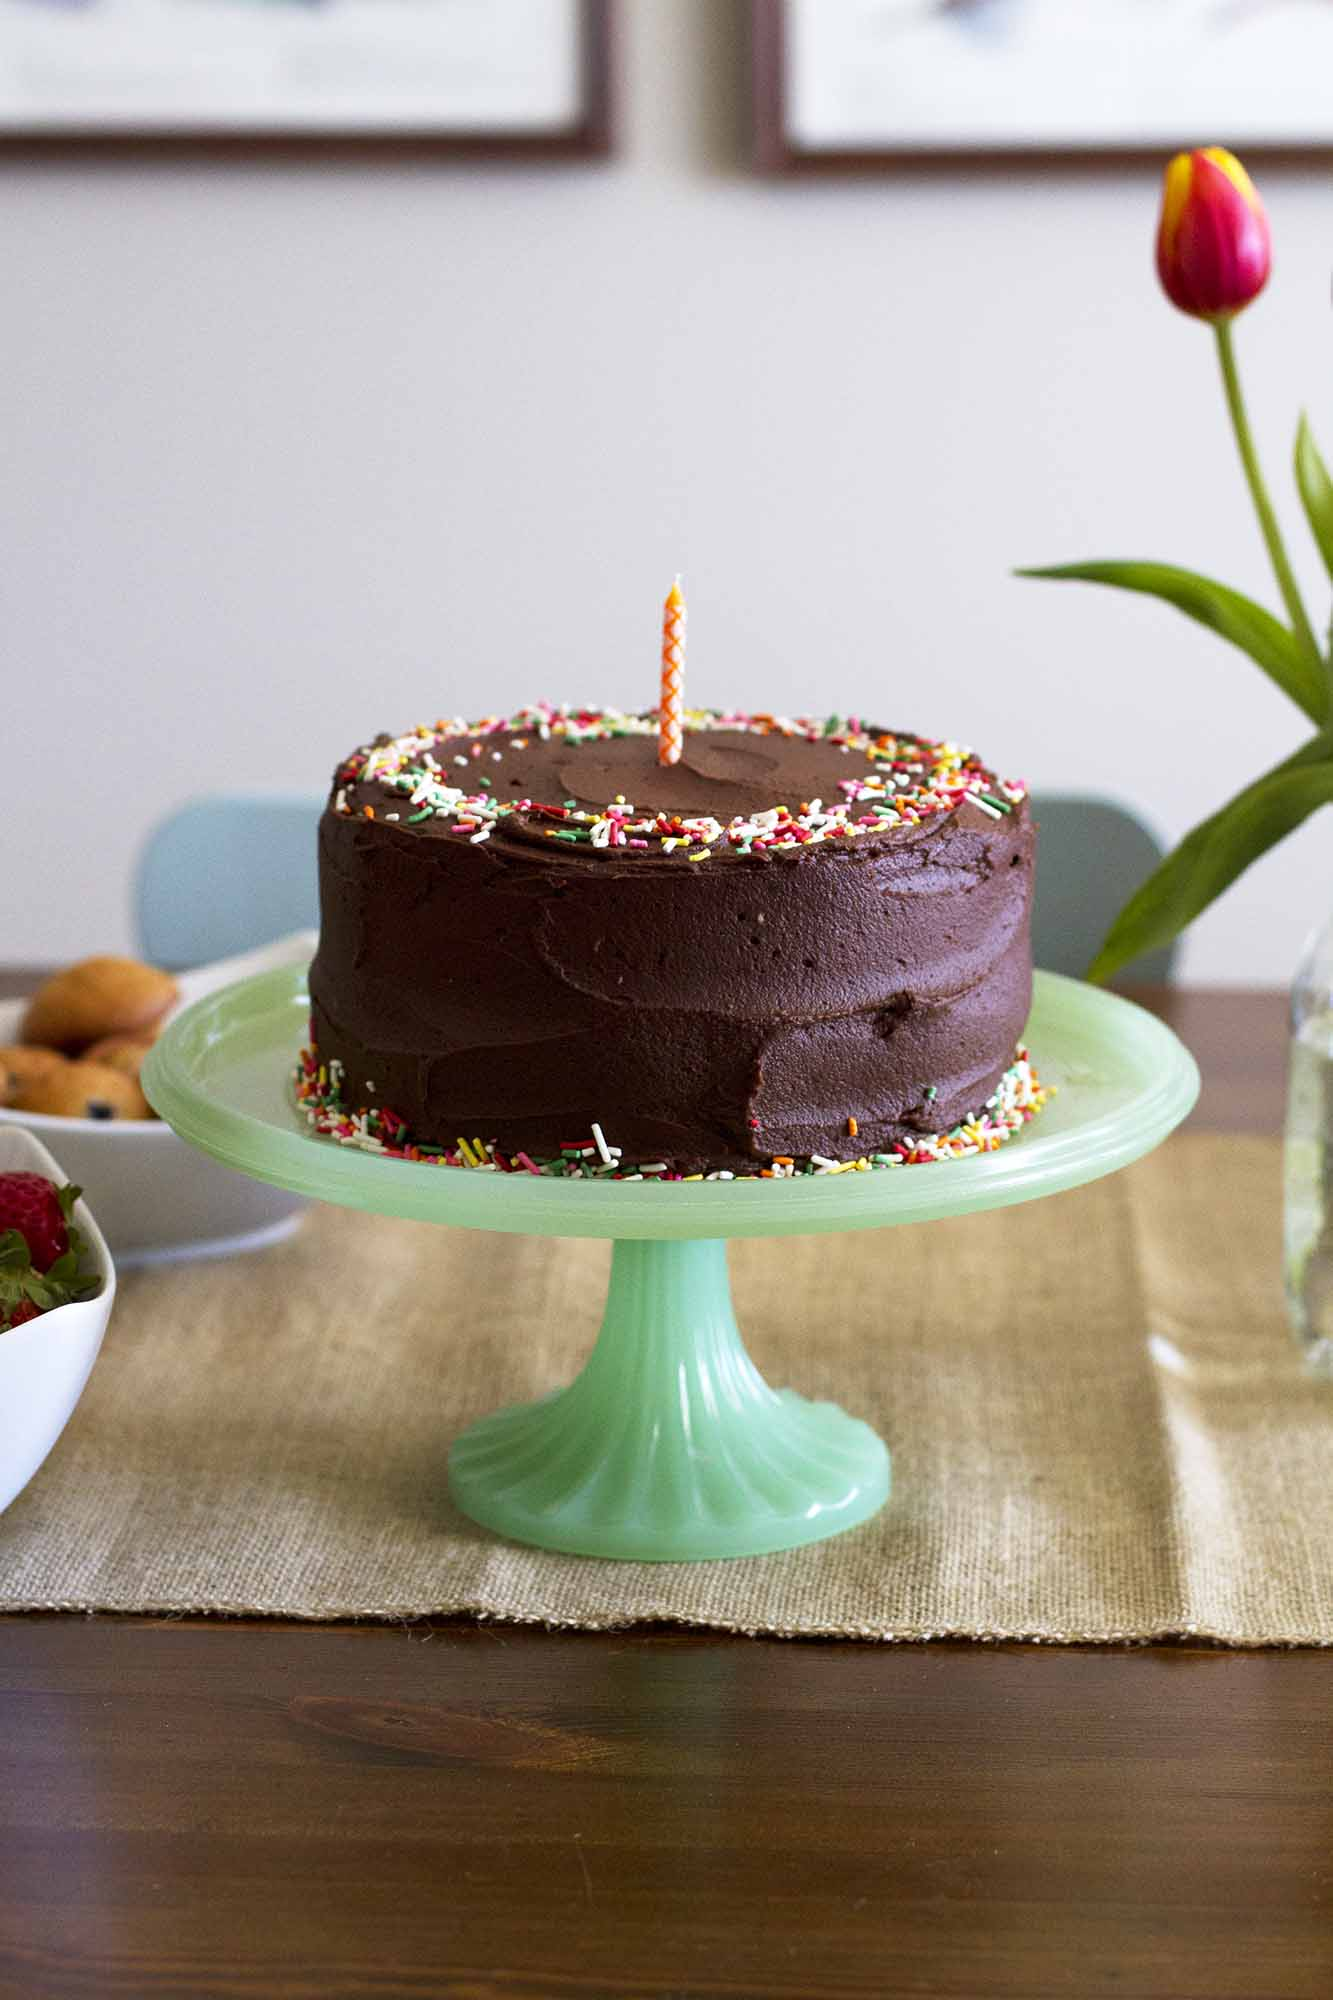 Yellow Birthday Cake with Chocolate Buttercream Frosting | girlversusdough.com @girlversusdough